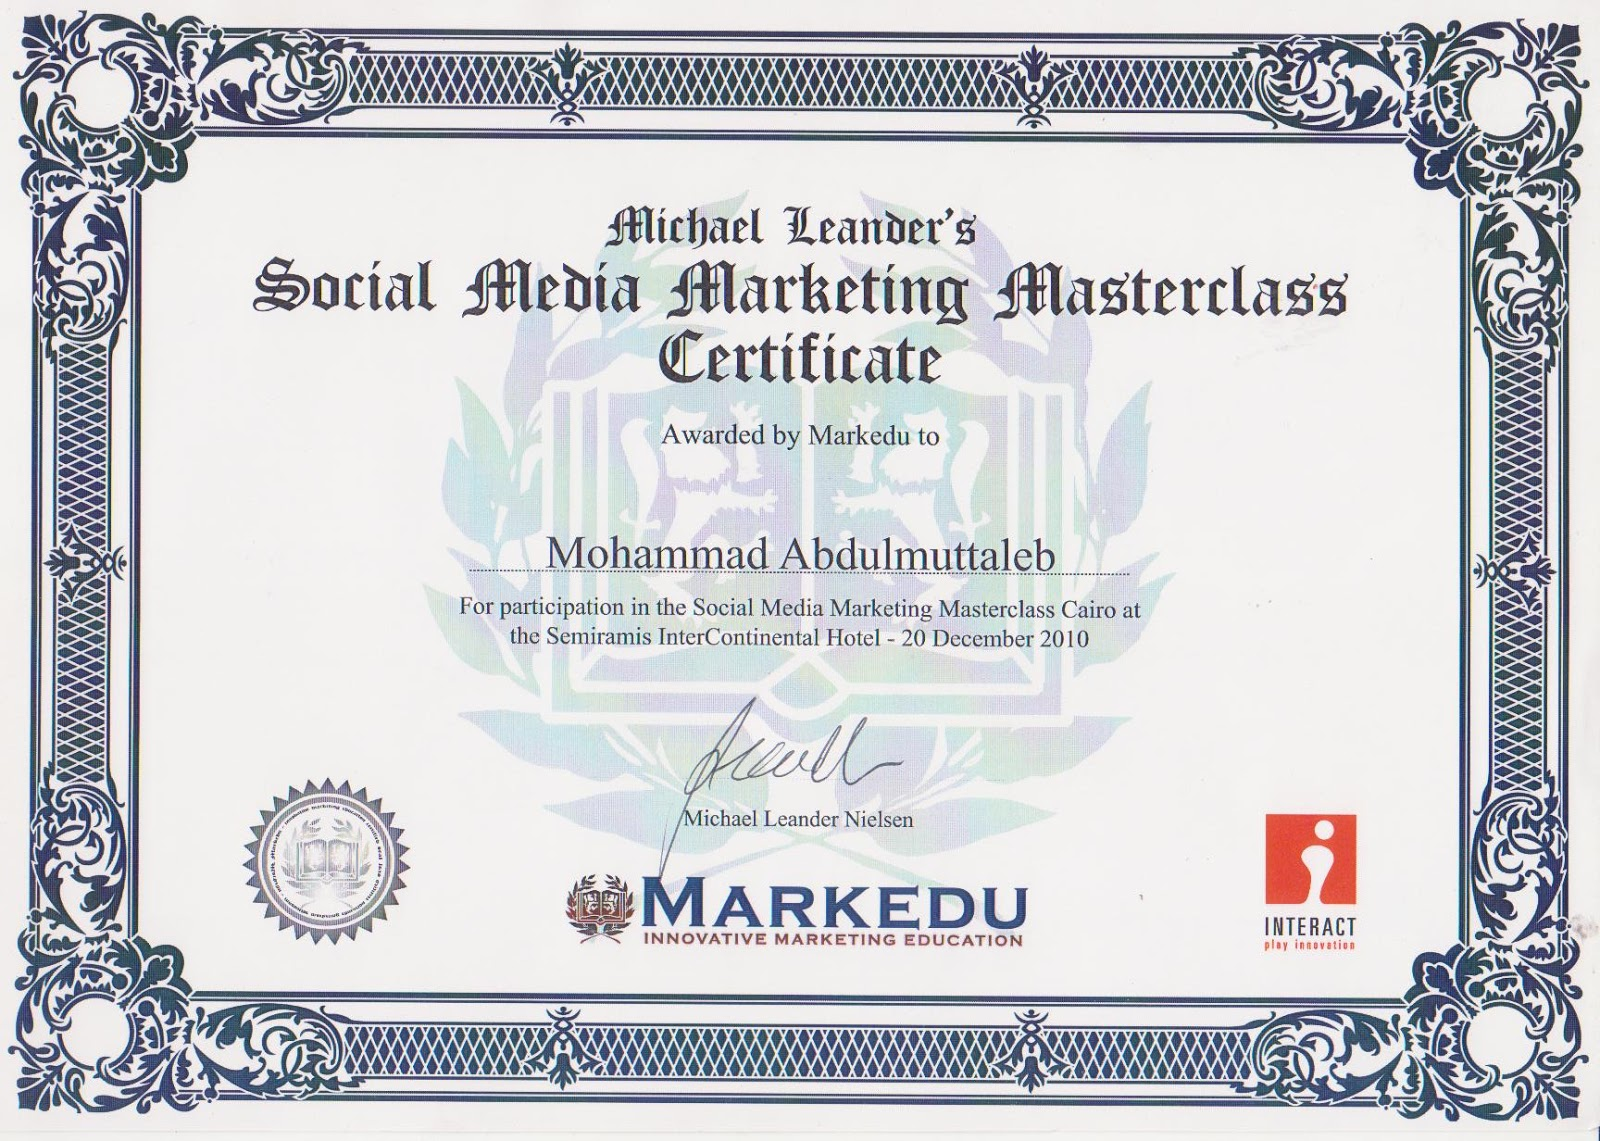 Certification+Certificate+Social+Media+Training+Professional+Certified+Marketing+Networks+eMarketing+Internet+Promotion+Training+Egypt+Cairo+Mohammad+New+Egypt+Consulting+Campaign+Online.jpg